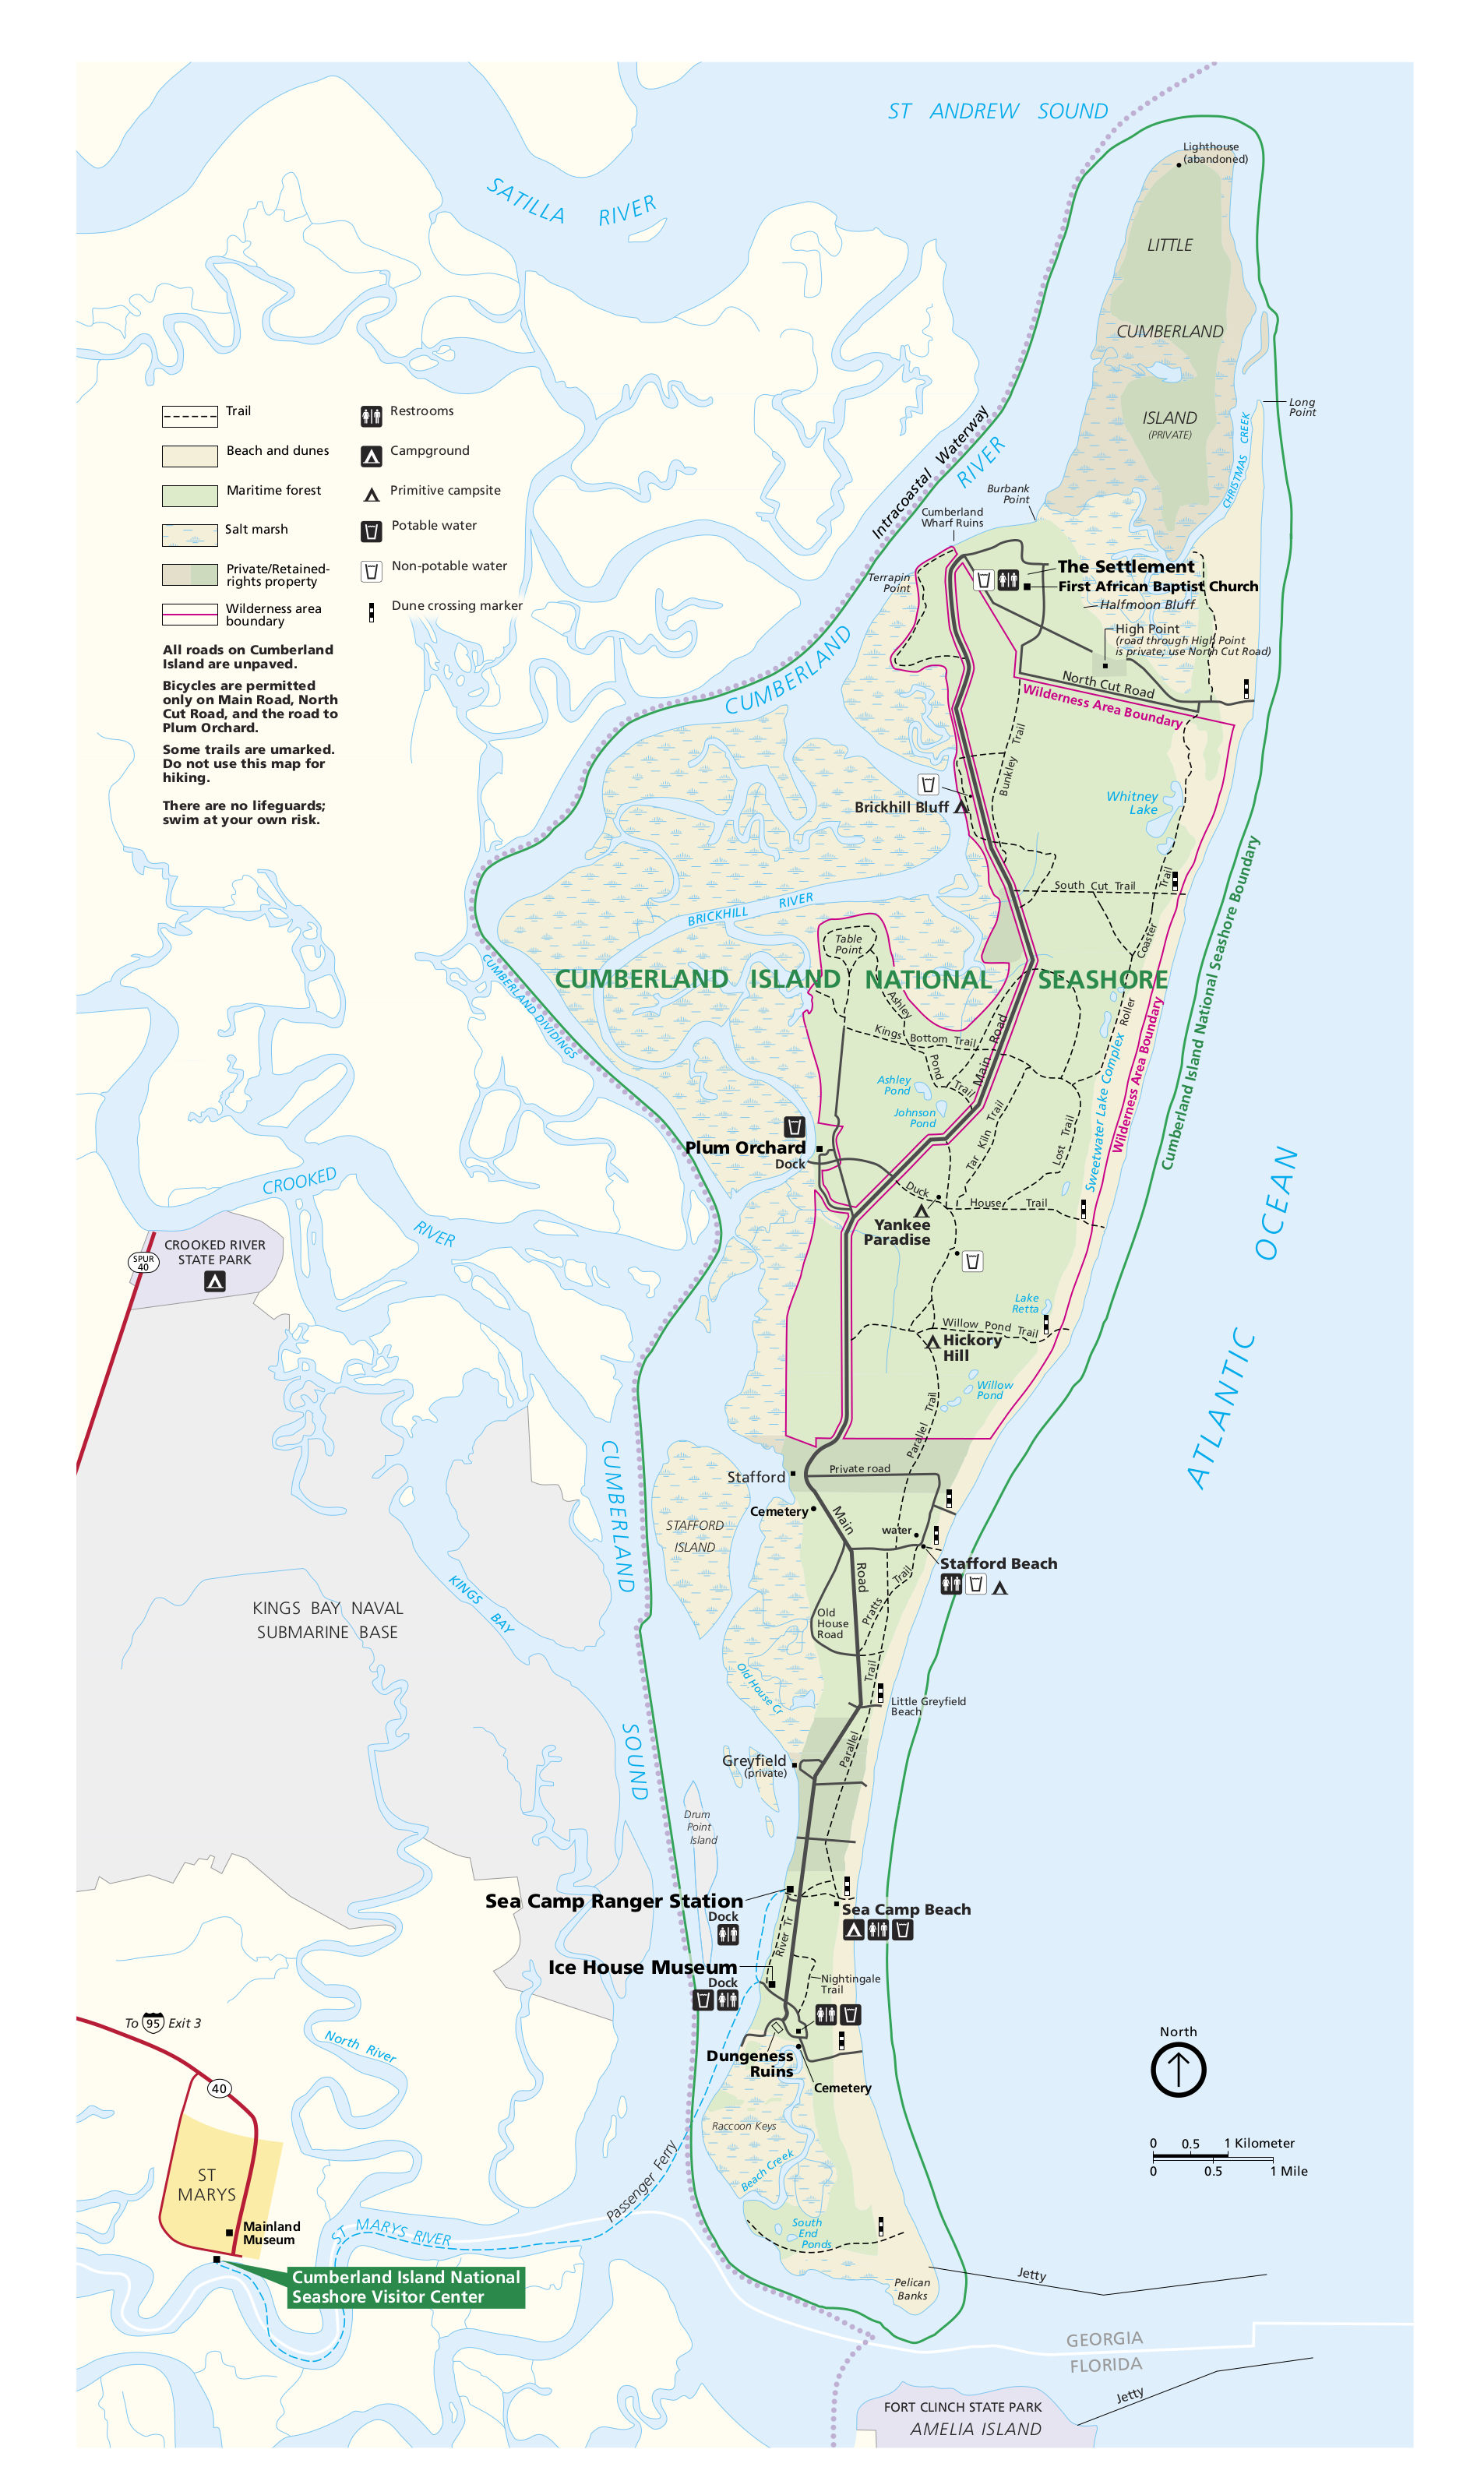 Cumberland Island Map Cumberland Island Maps | NPMaps.  just free maps, period.